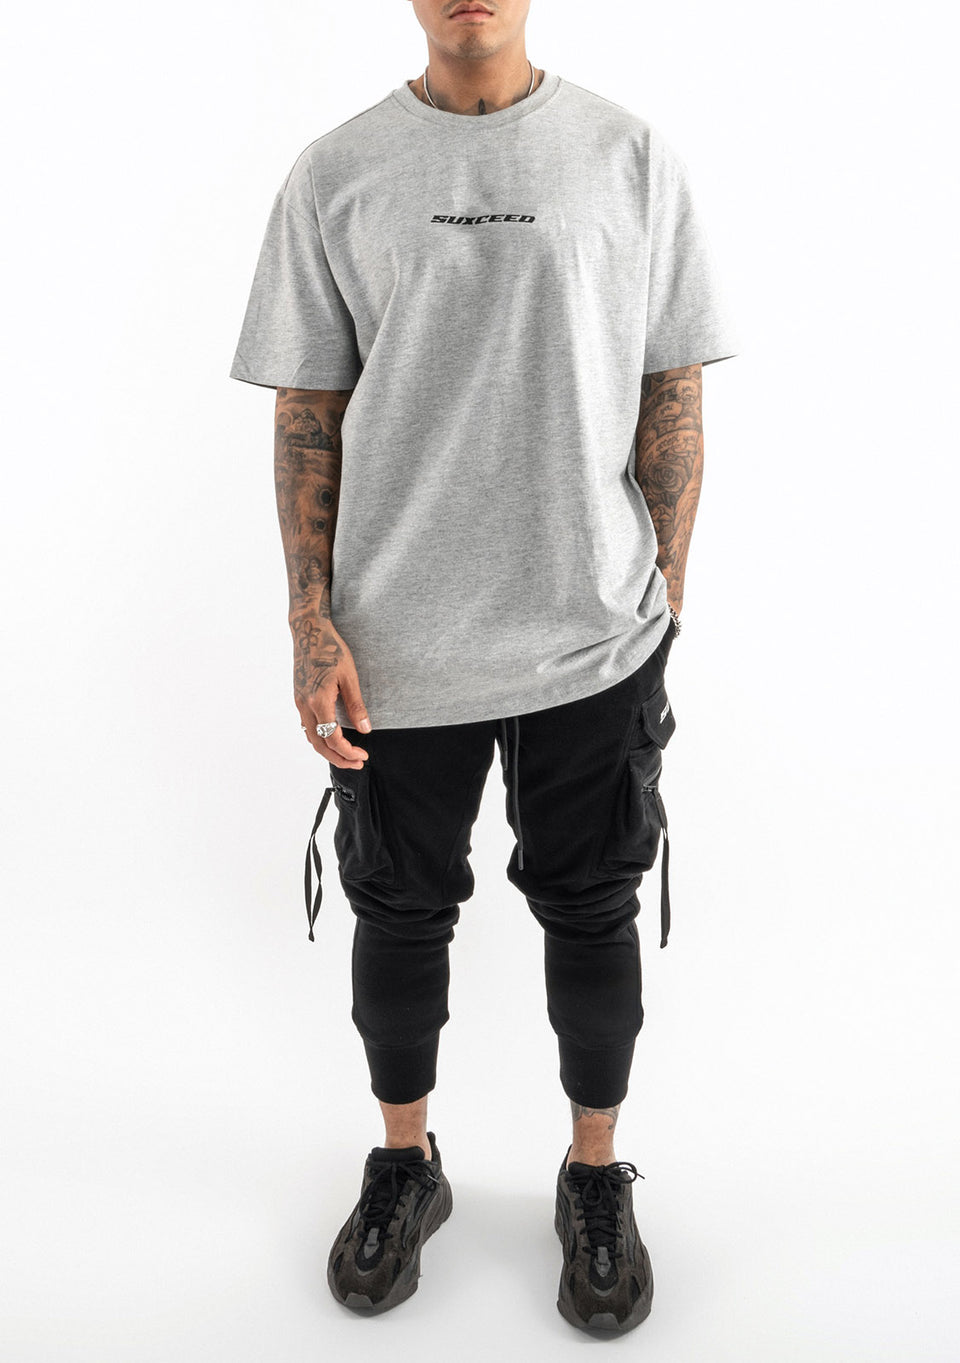 Suxceed Reflekt Oversized Tshirt (GREY)